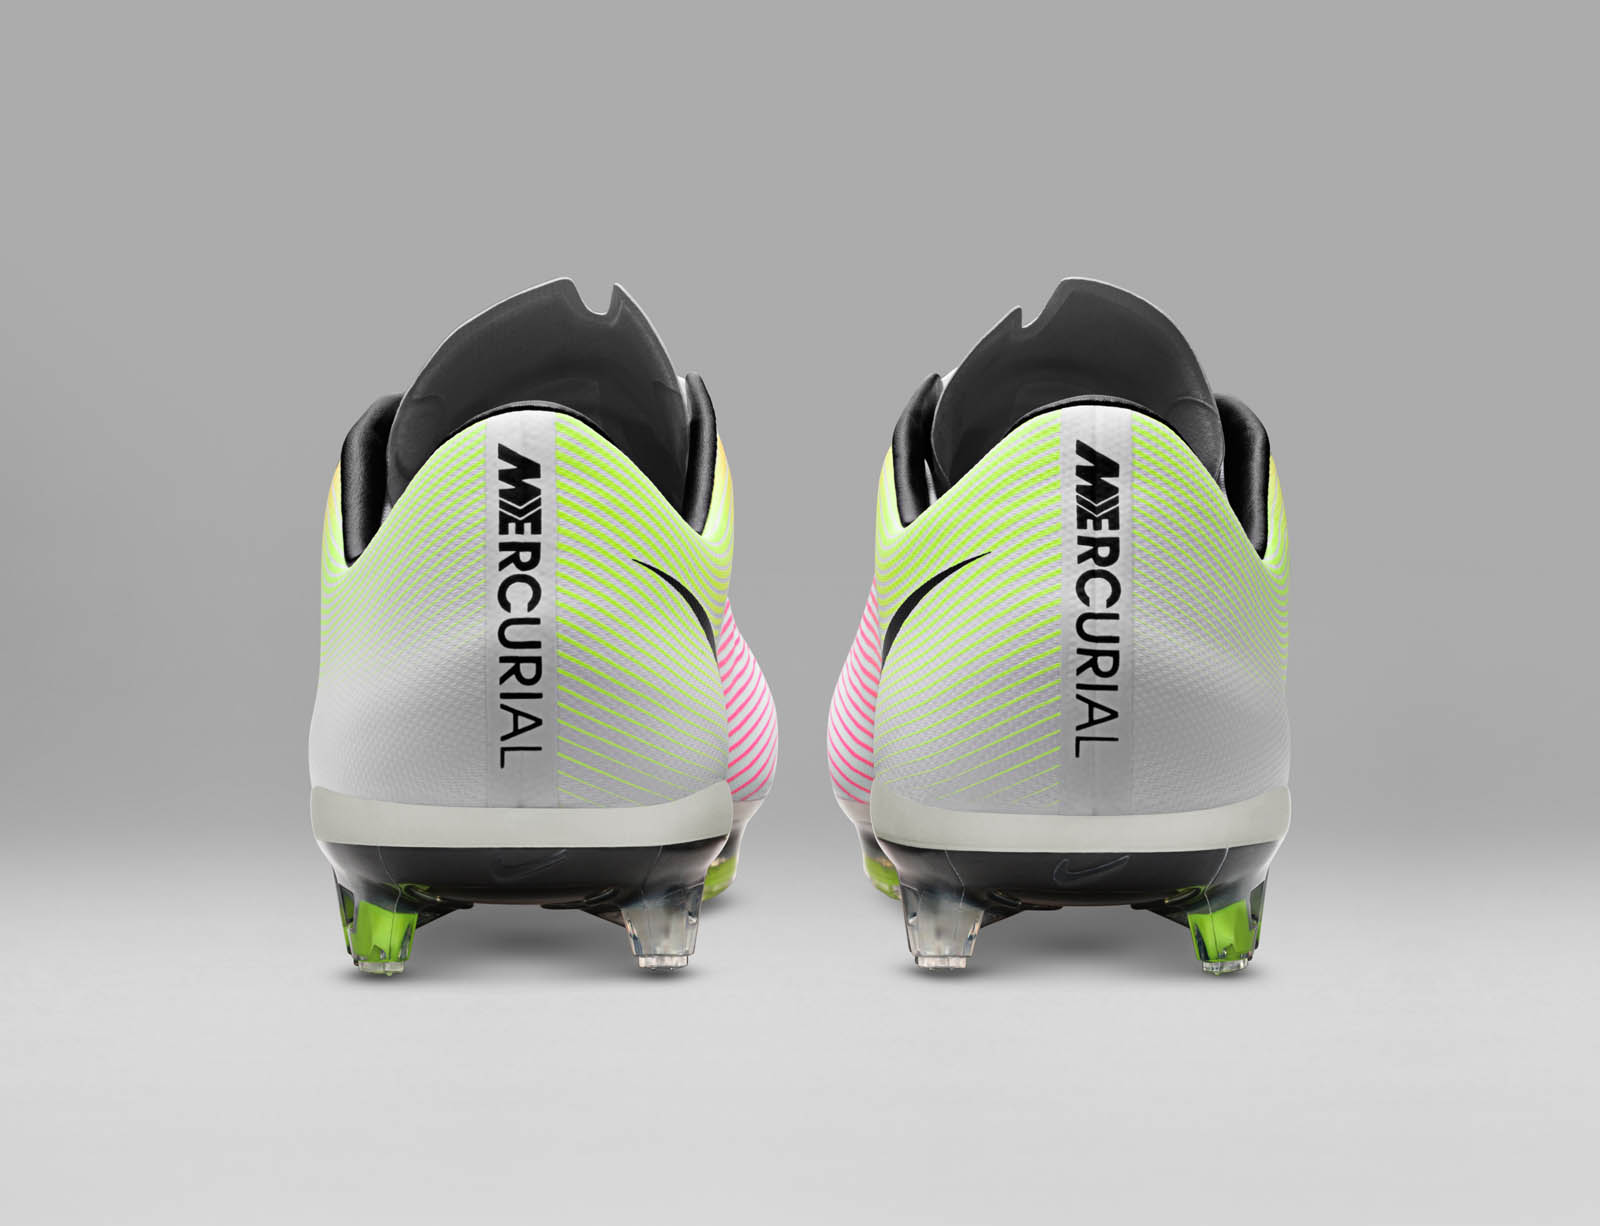 e3a84160e Discount Nike Mercurial Vapor X 2016 Radiant Reveal Boots Released